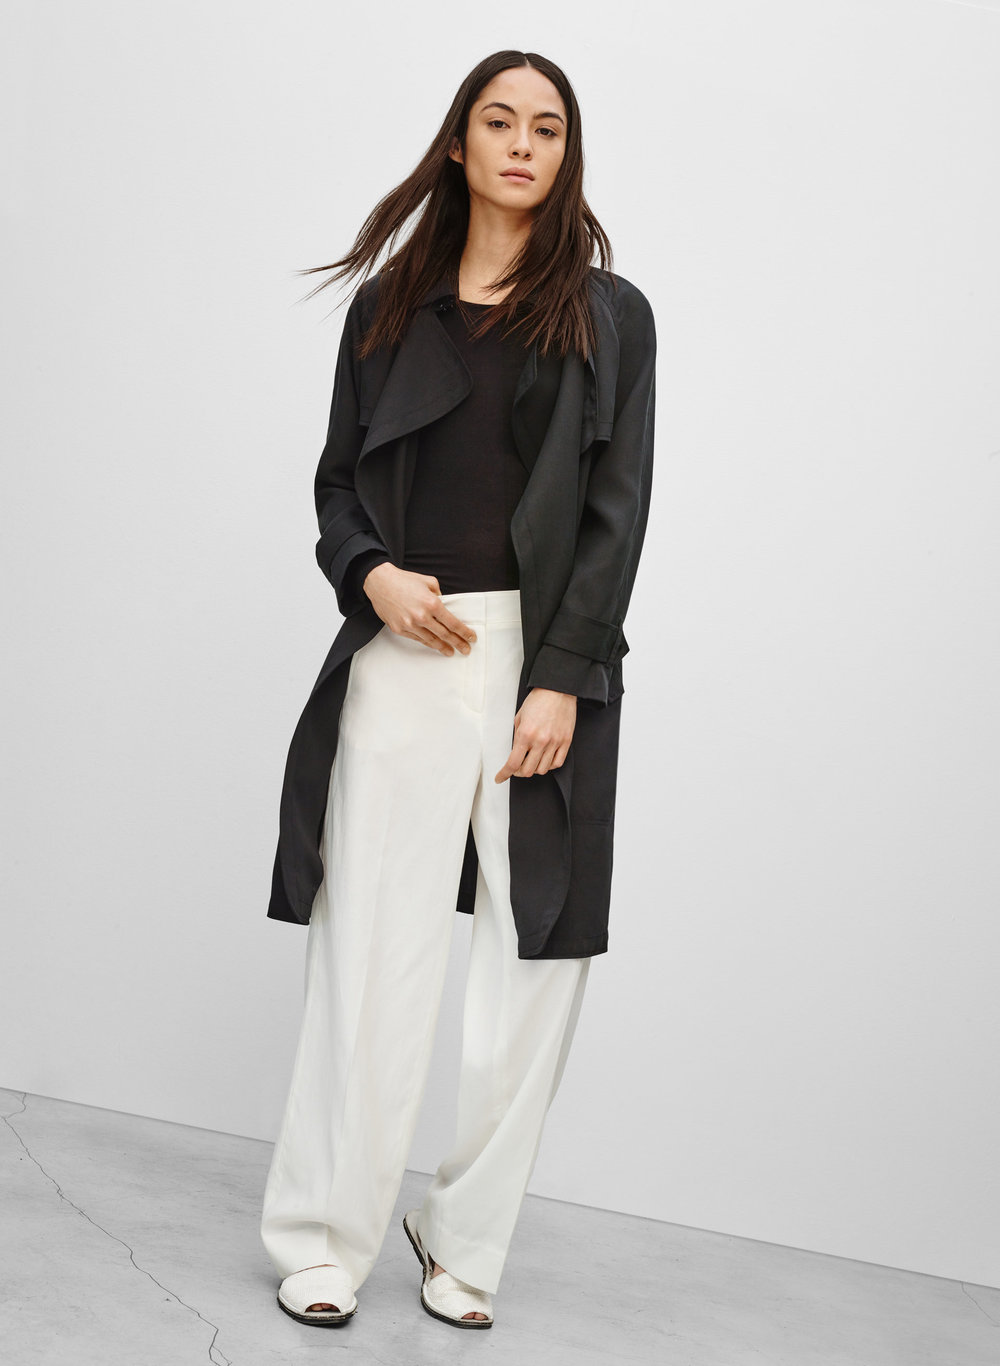 Babaton Lawson Trench Coat. Available in multiple colors. Aritzia. $225.